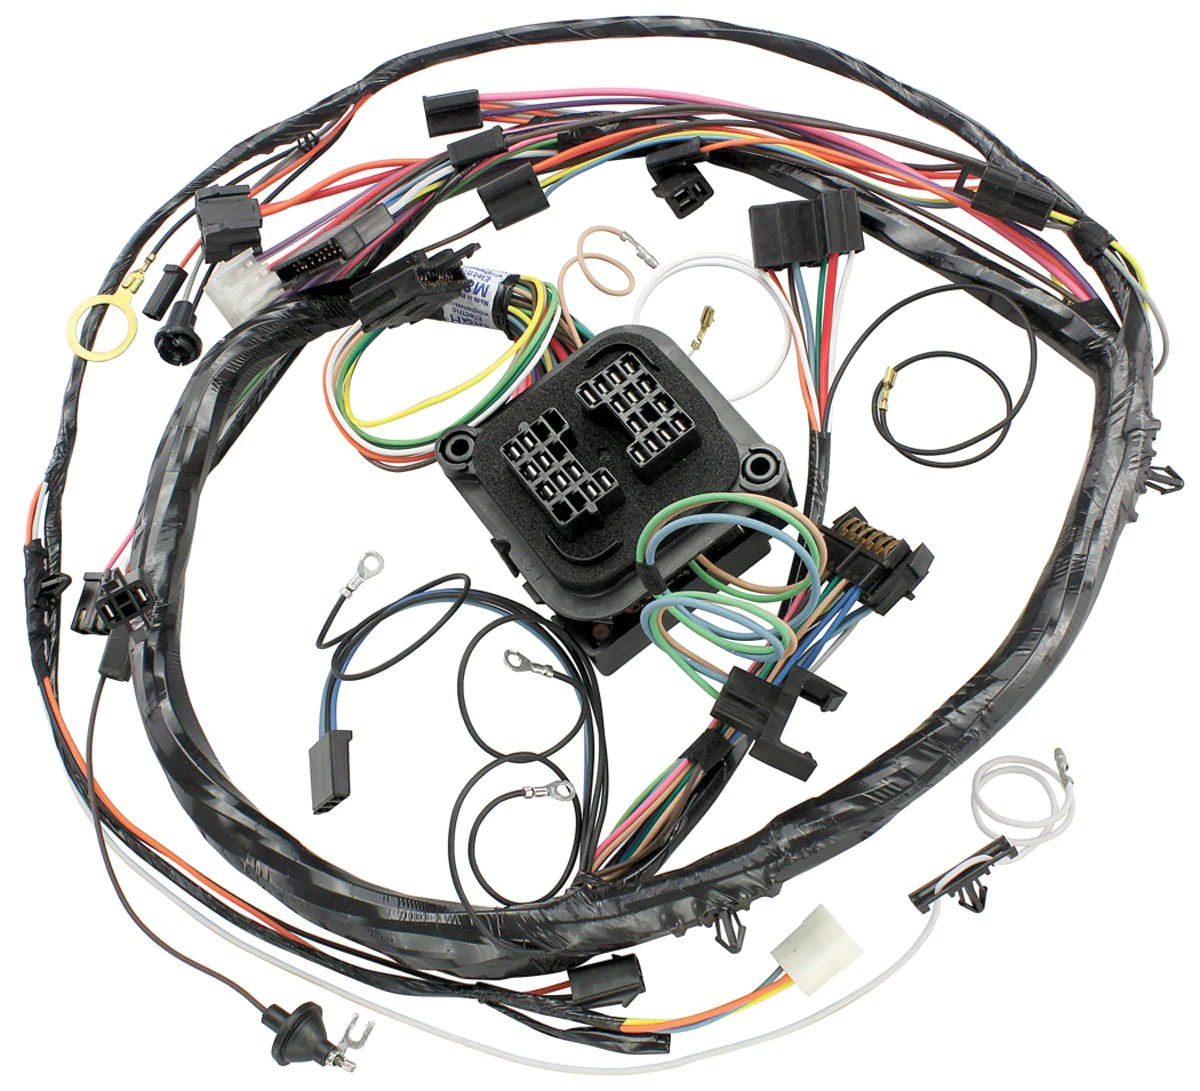 medium resolution of 1970 chevelle and el camino ss dash harness with factory gauges hi chevelle dash wiring harness main for cars with factory gauges 1970